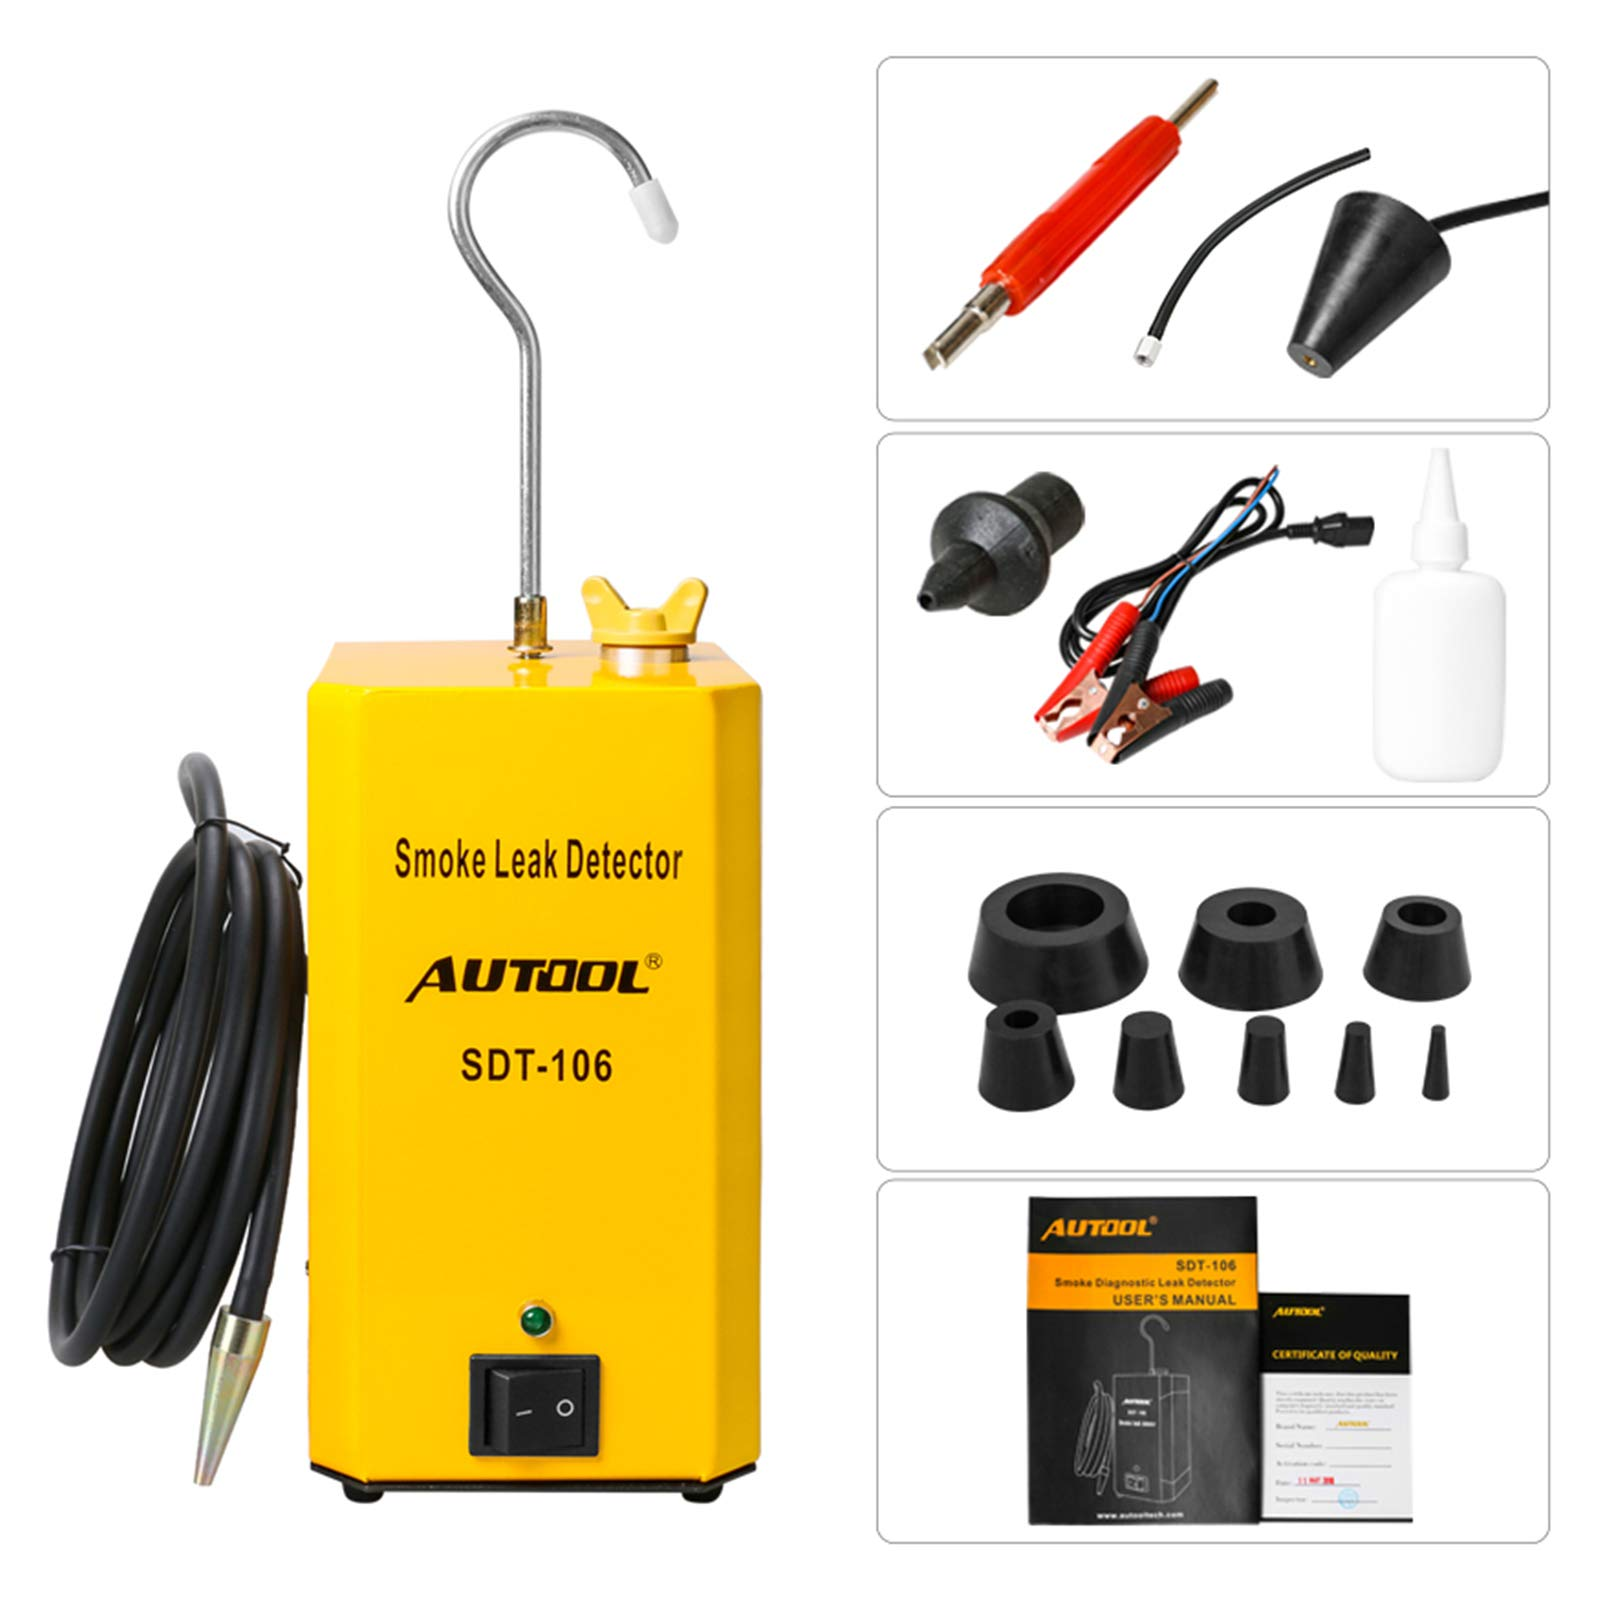 AUTOOL SDT-106 Automotive Fuel Leak Detectors Car Pipe Leakage Tester SDT106 Cars Leak Locator Automotive Diagnostic Leak Tools for 12V Vehicles